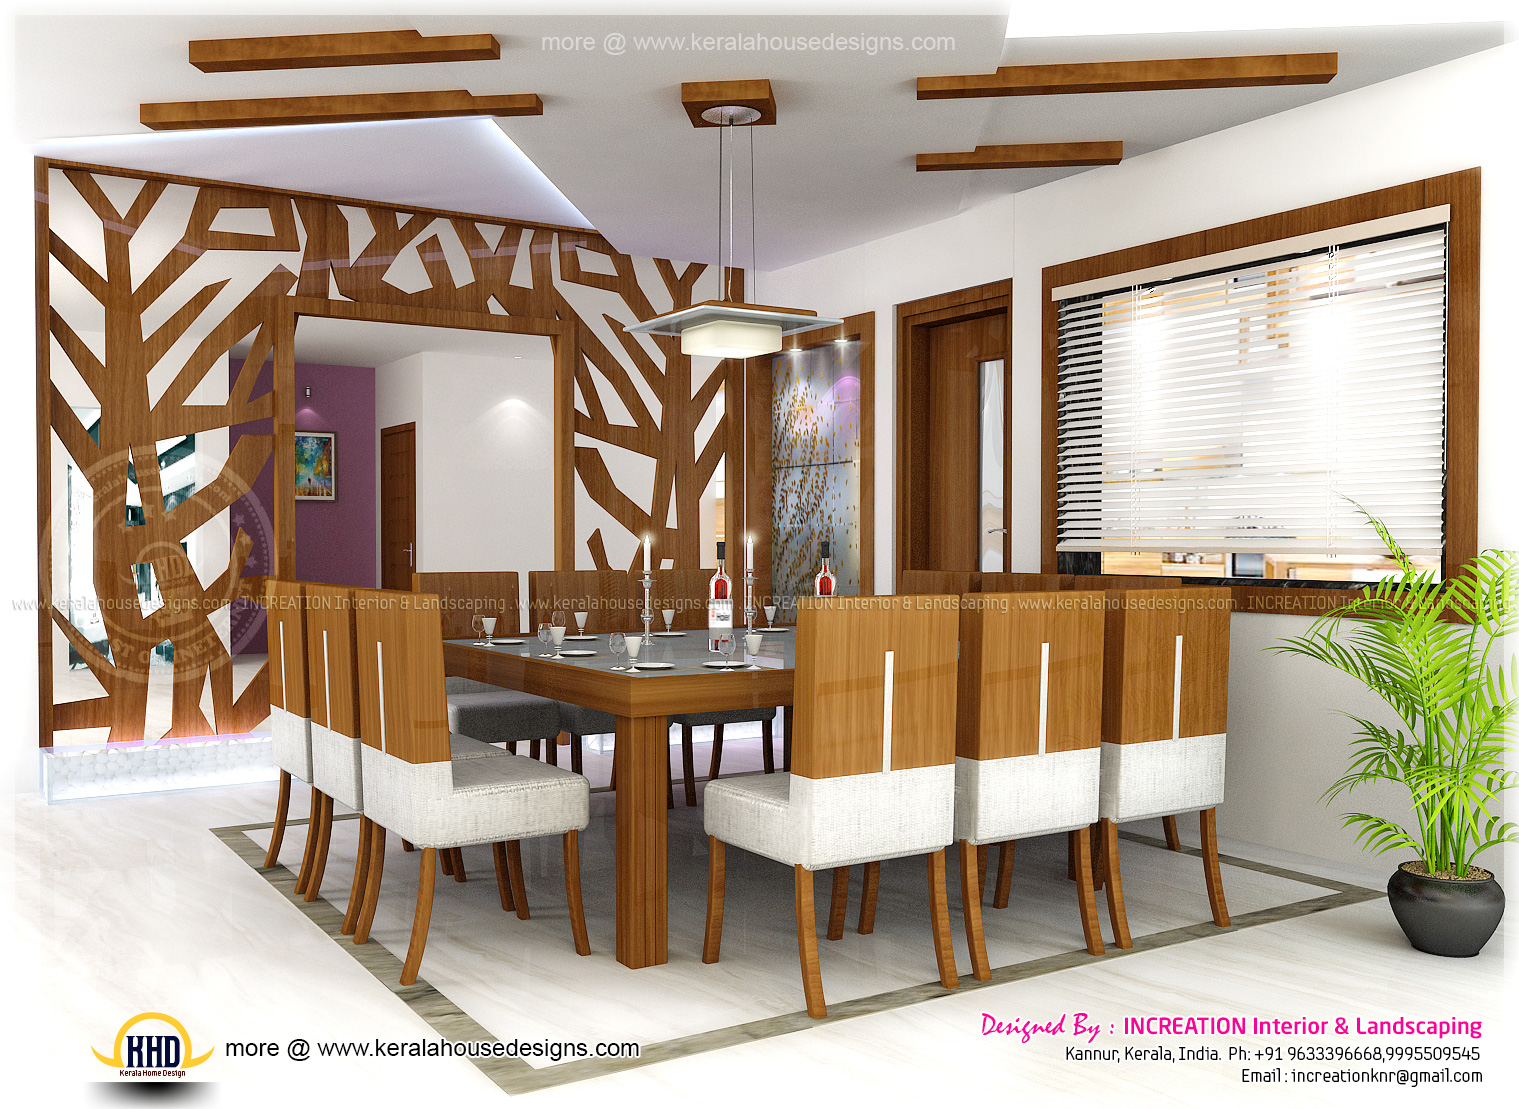 Interior designs from kannur kerala kerala home design Interior houses